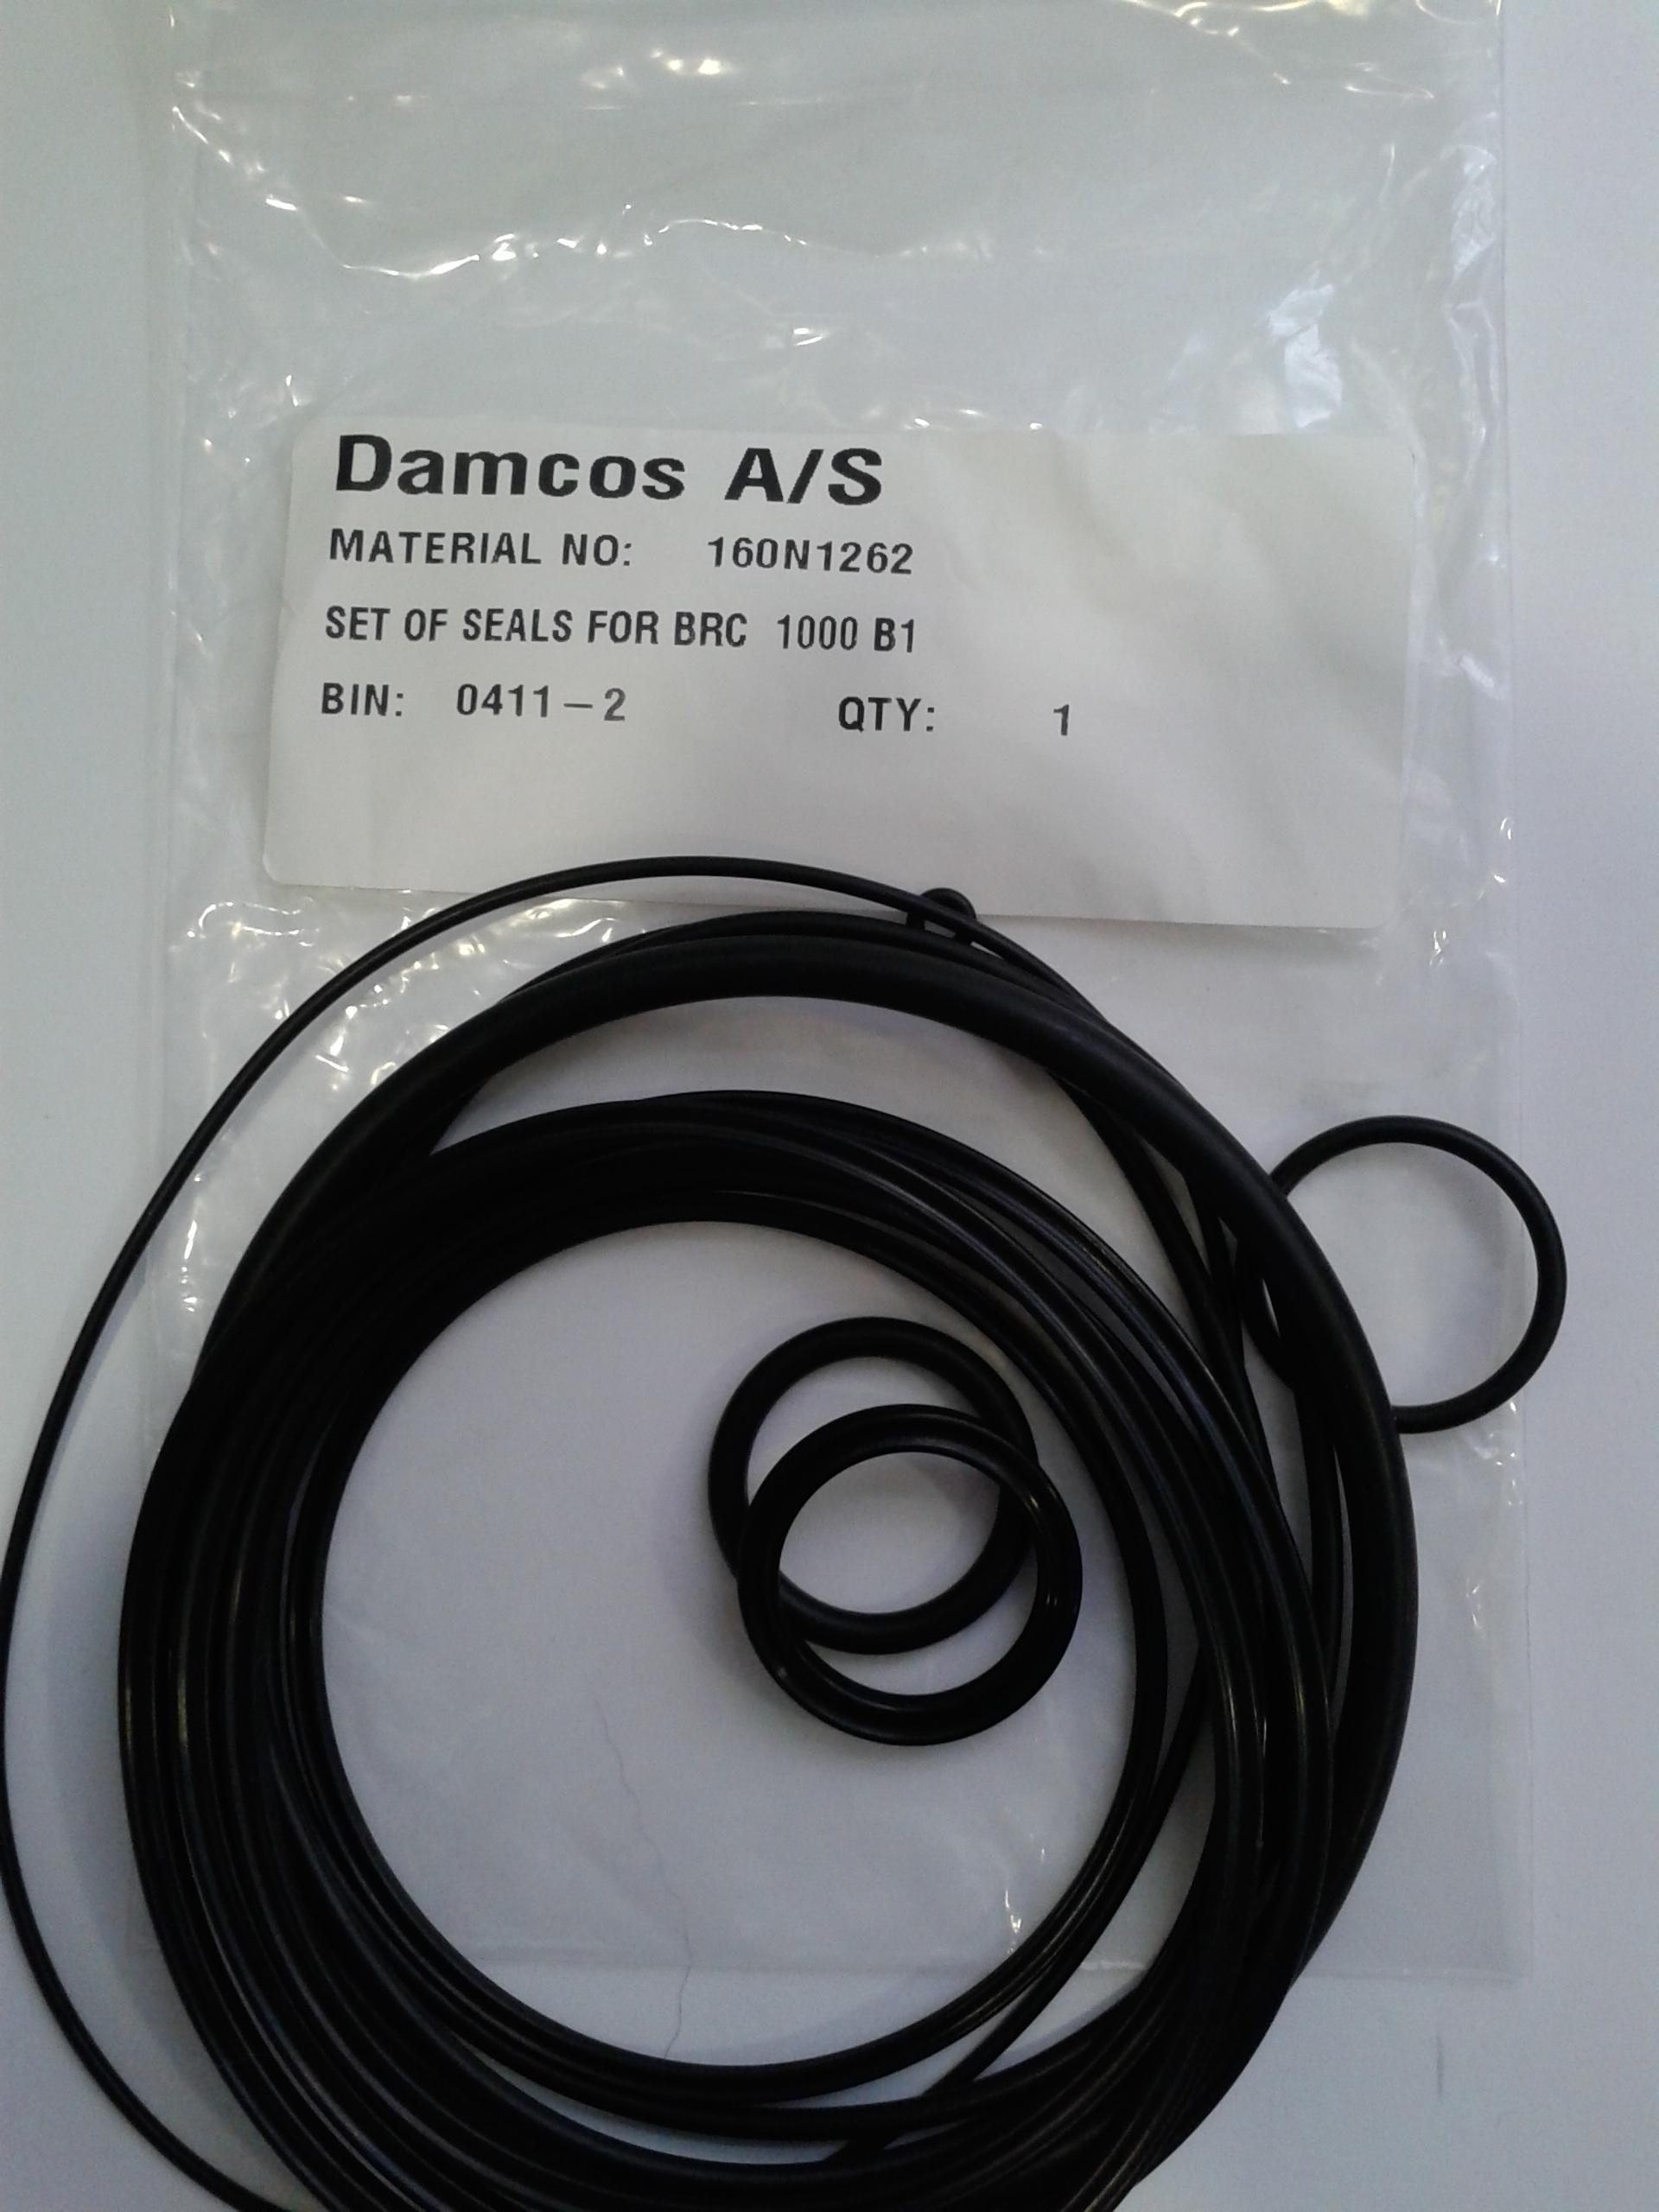 Damcos-BRC-1000-A1-Seal-Kit-Part-no-160N1262